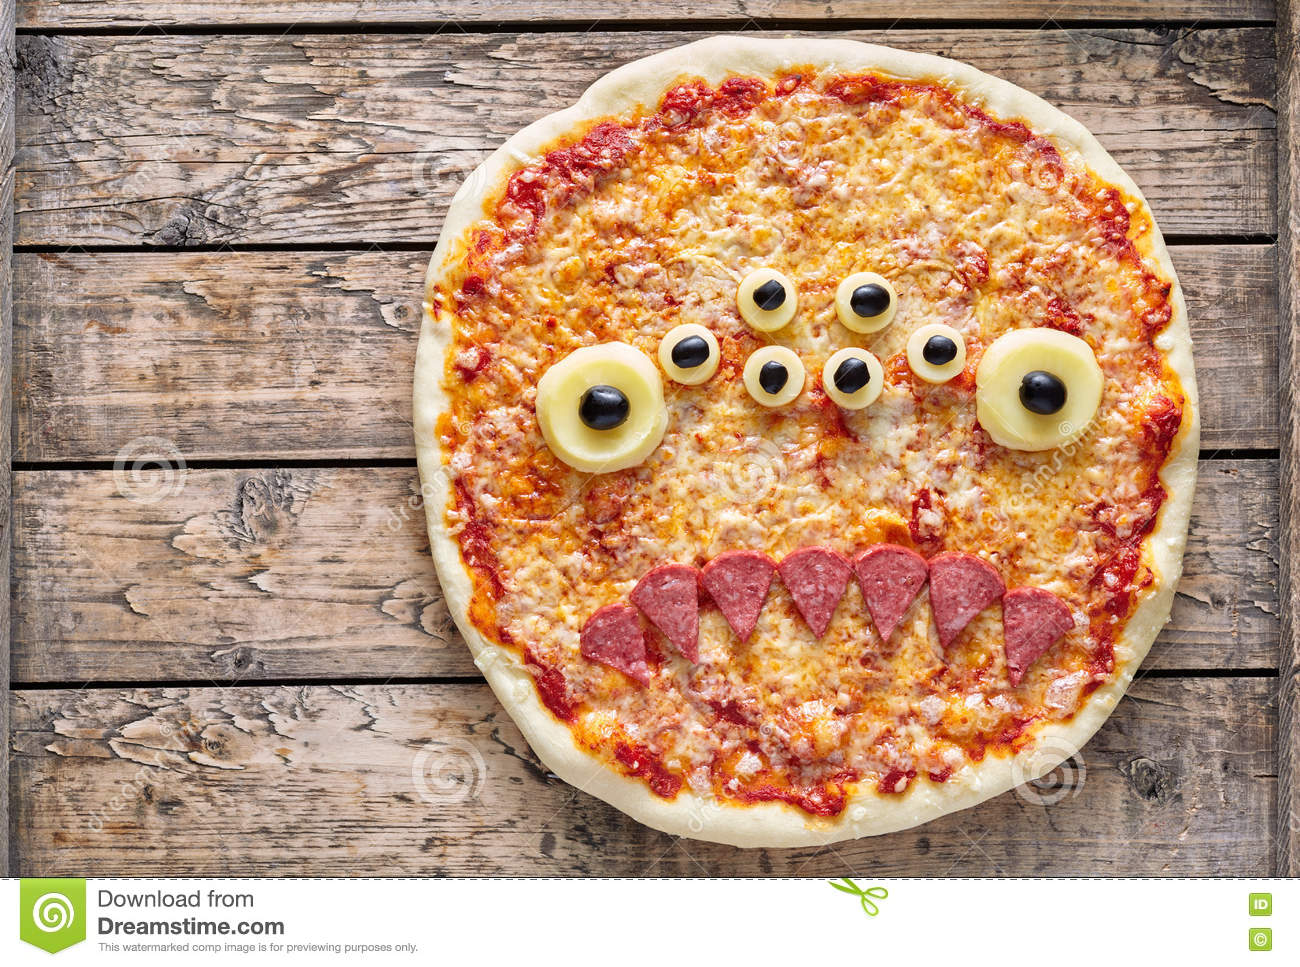 Halloween creative scary food monster zombie face with eyes pizza snack